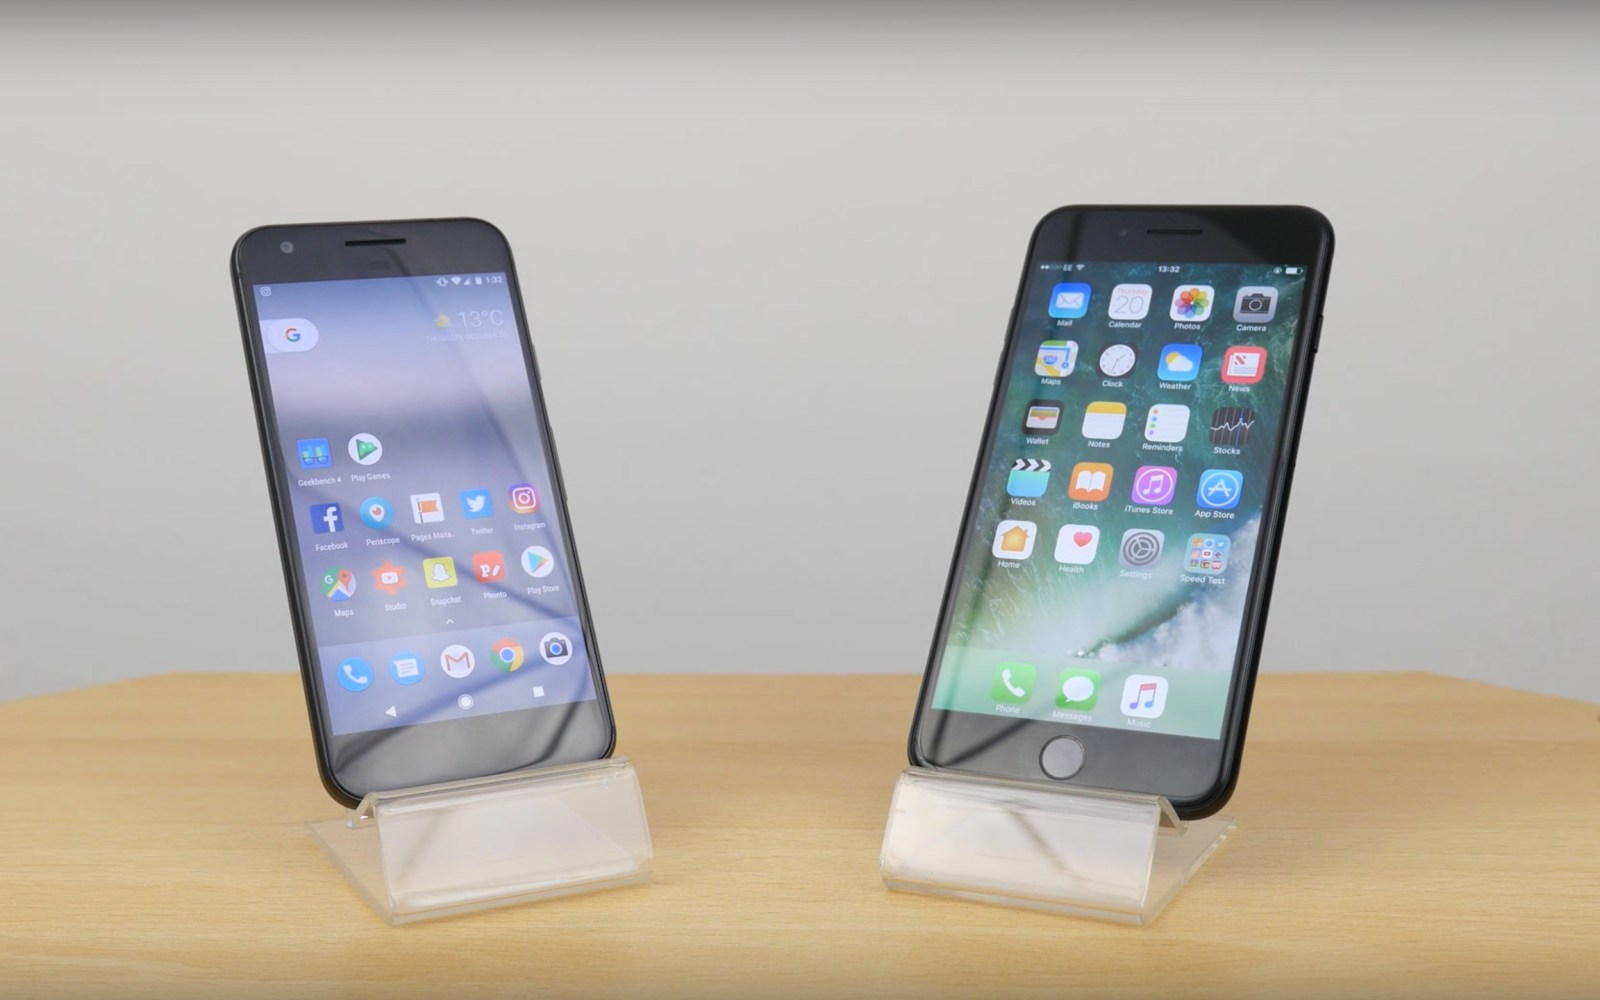 The Pixel goes head to head against the iPhone 7 in speed tests, with interesting results [Video]